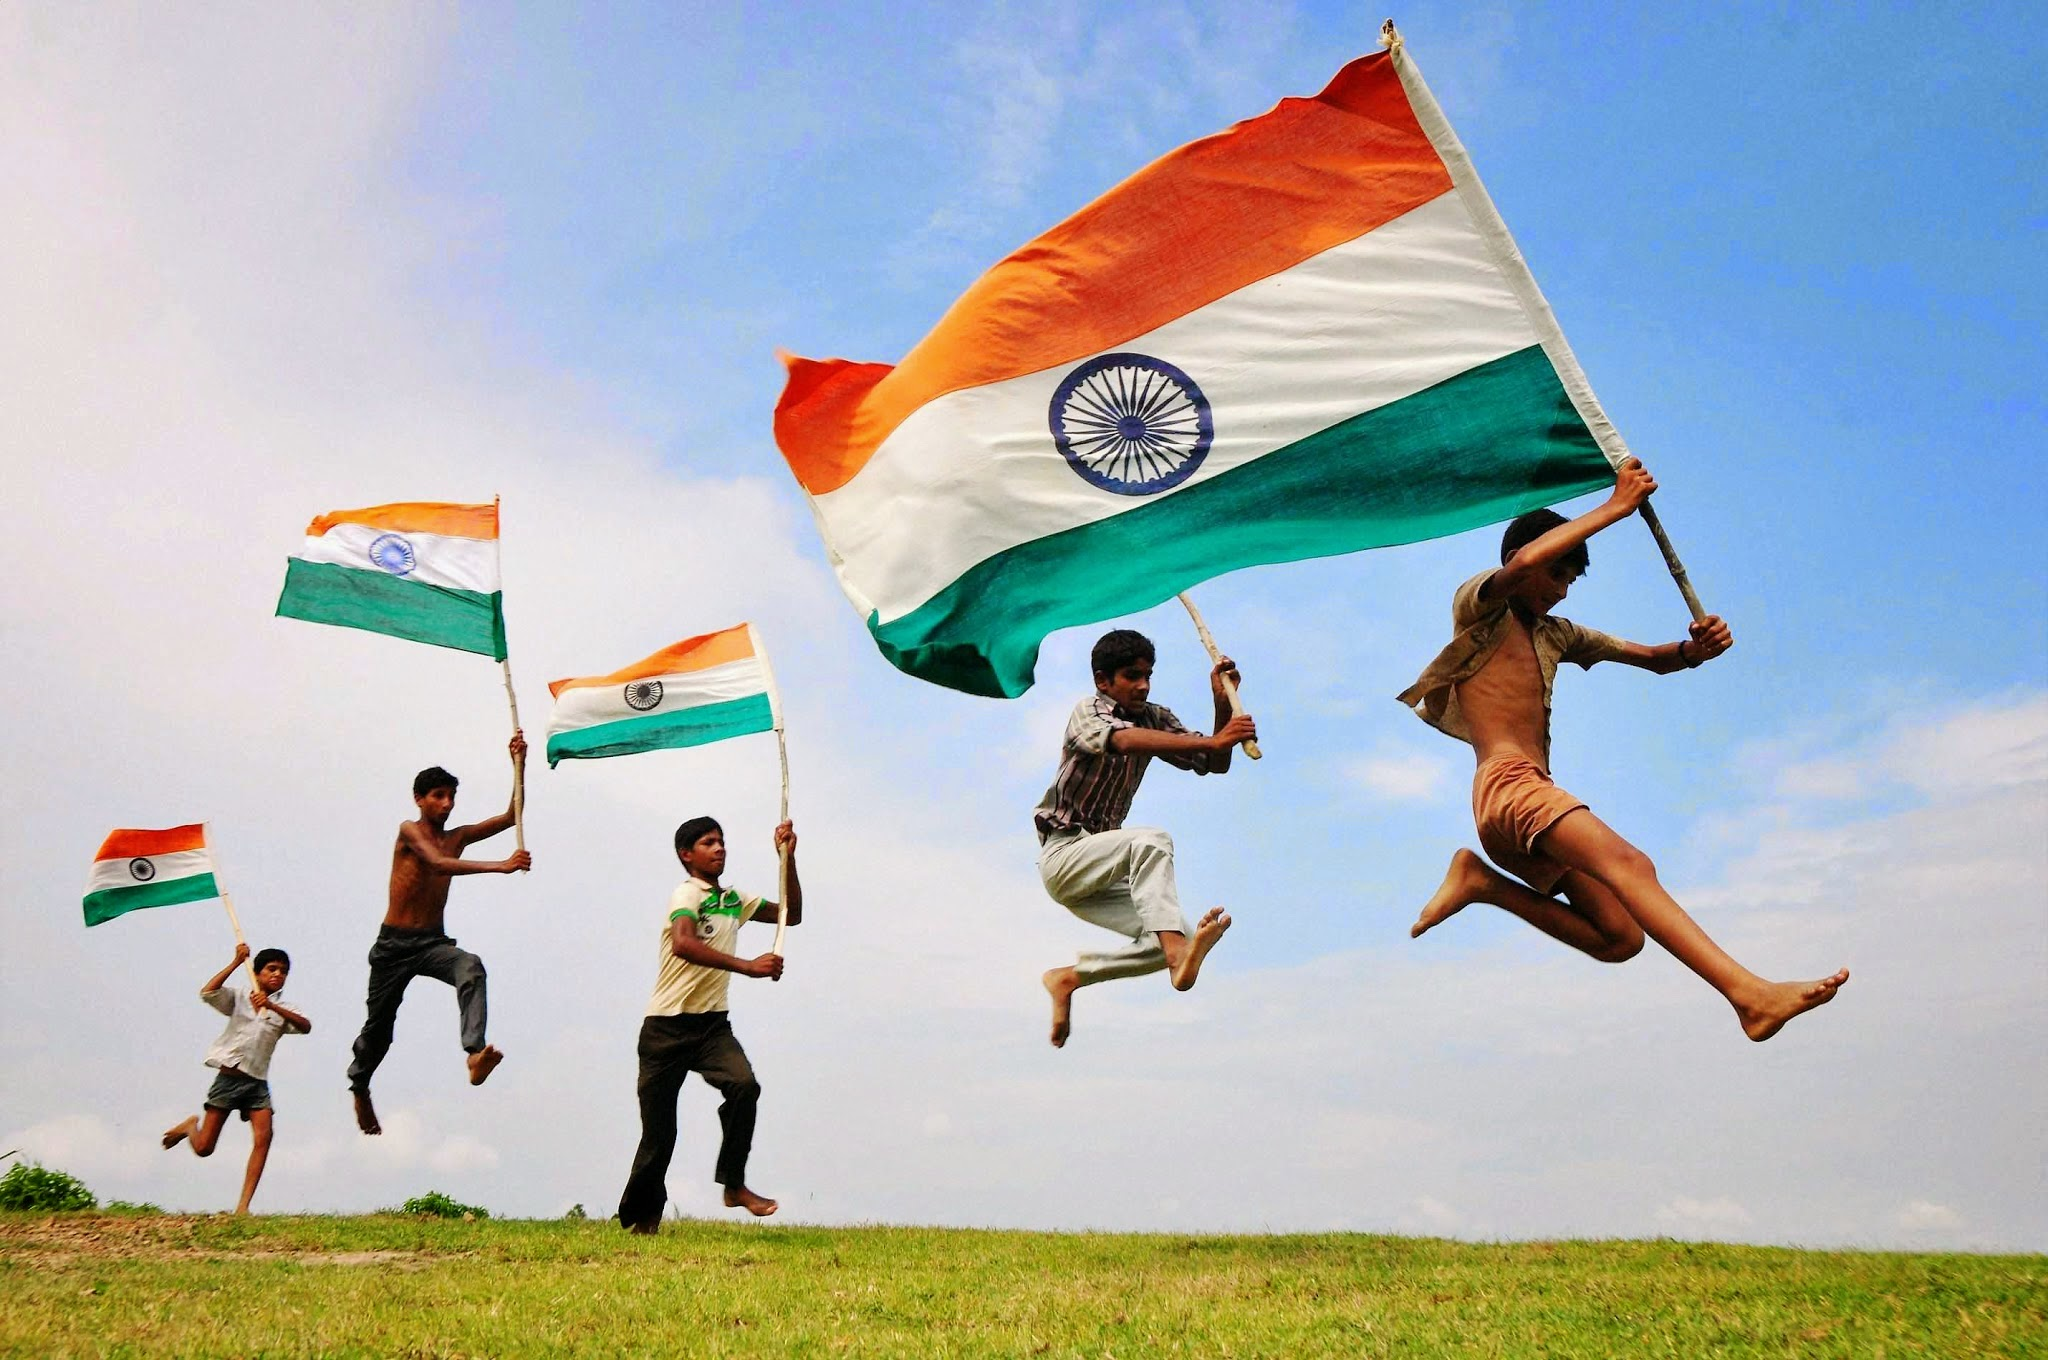 Indian Flag Wallpapers in HD and GIF